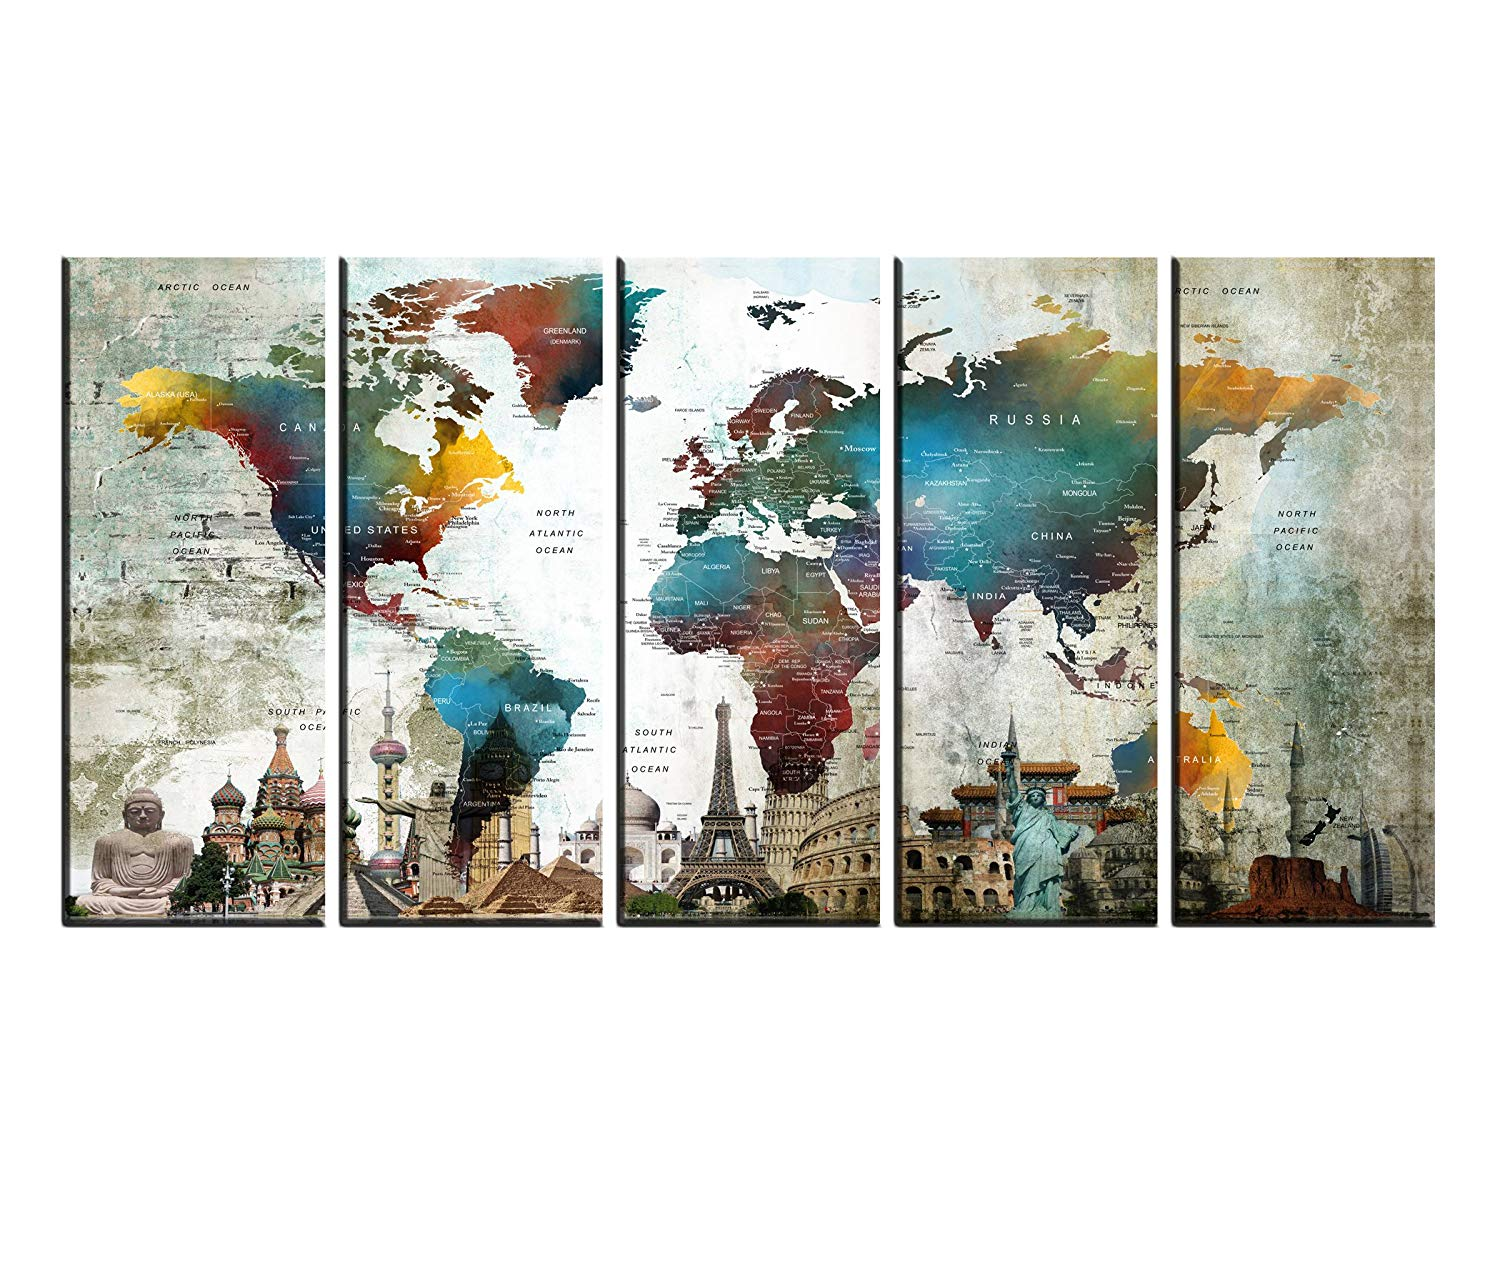 Extra Large World Map Wall Art Push Pin Canvas Print set Multi Panels 5 pieces, Atlas Globe wall decal for Kids Room, Framed, Large Watercolor Wall Decor hr155